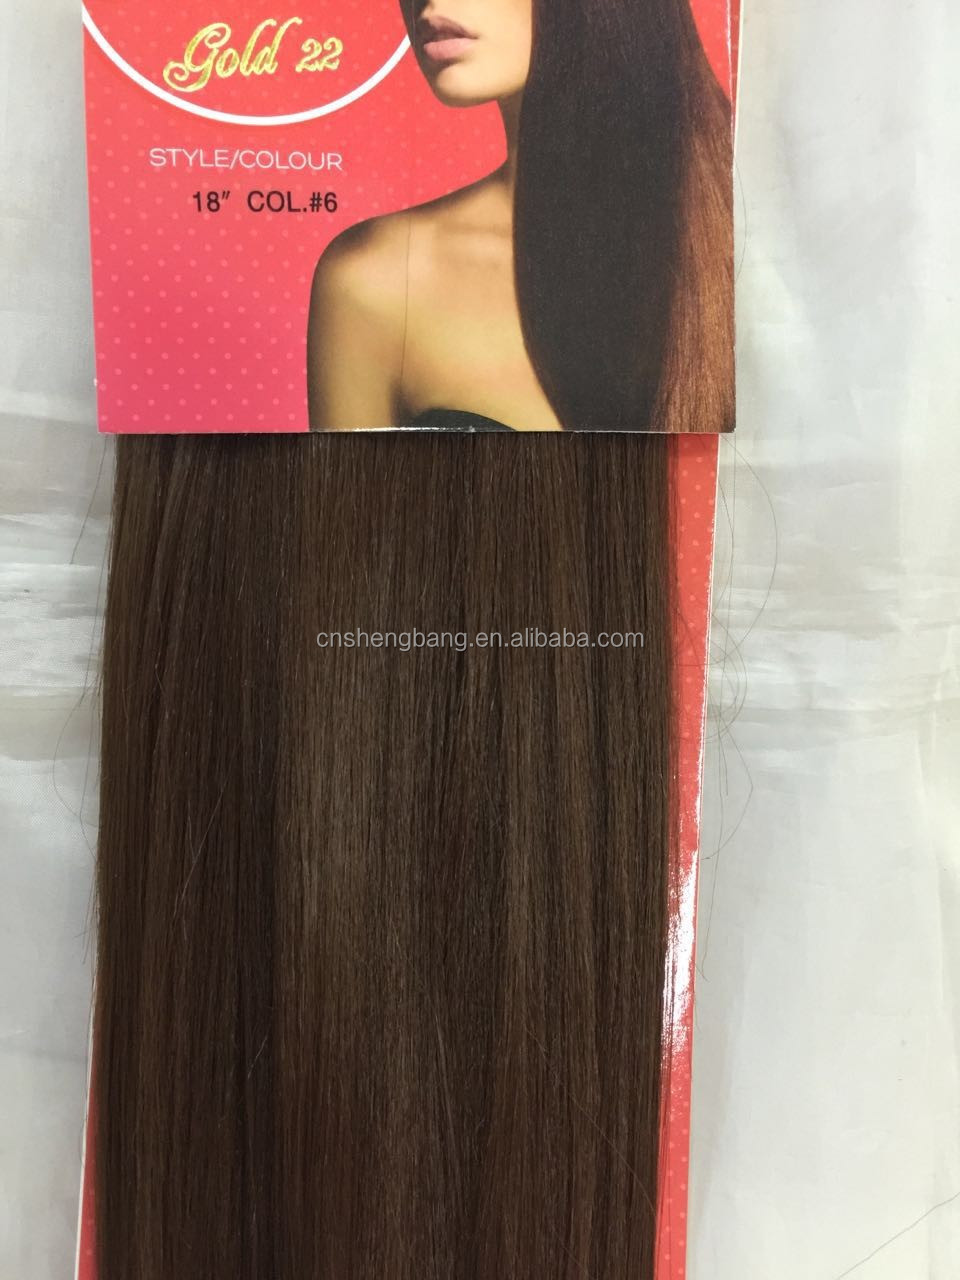 The Look Gold 22 Synthetic hair weft length 14inch-22inch,color 1# 1b 2# 4# 6# wholesale synthetic hair extensions